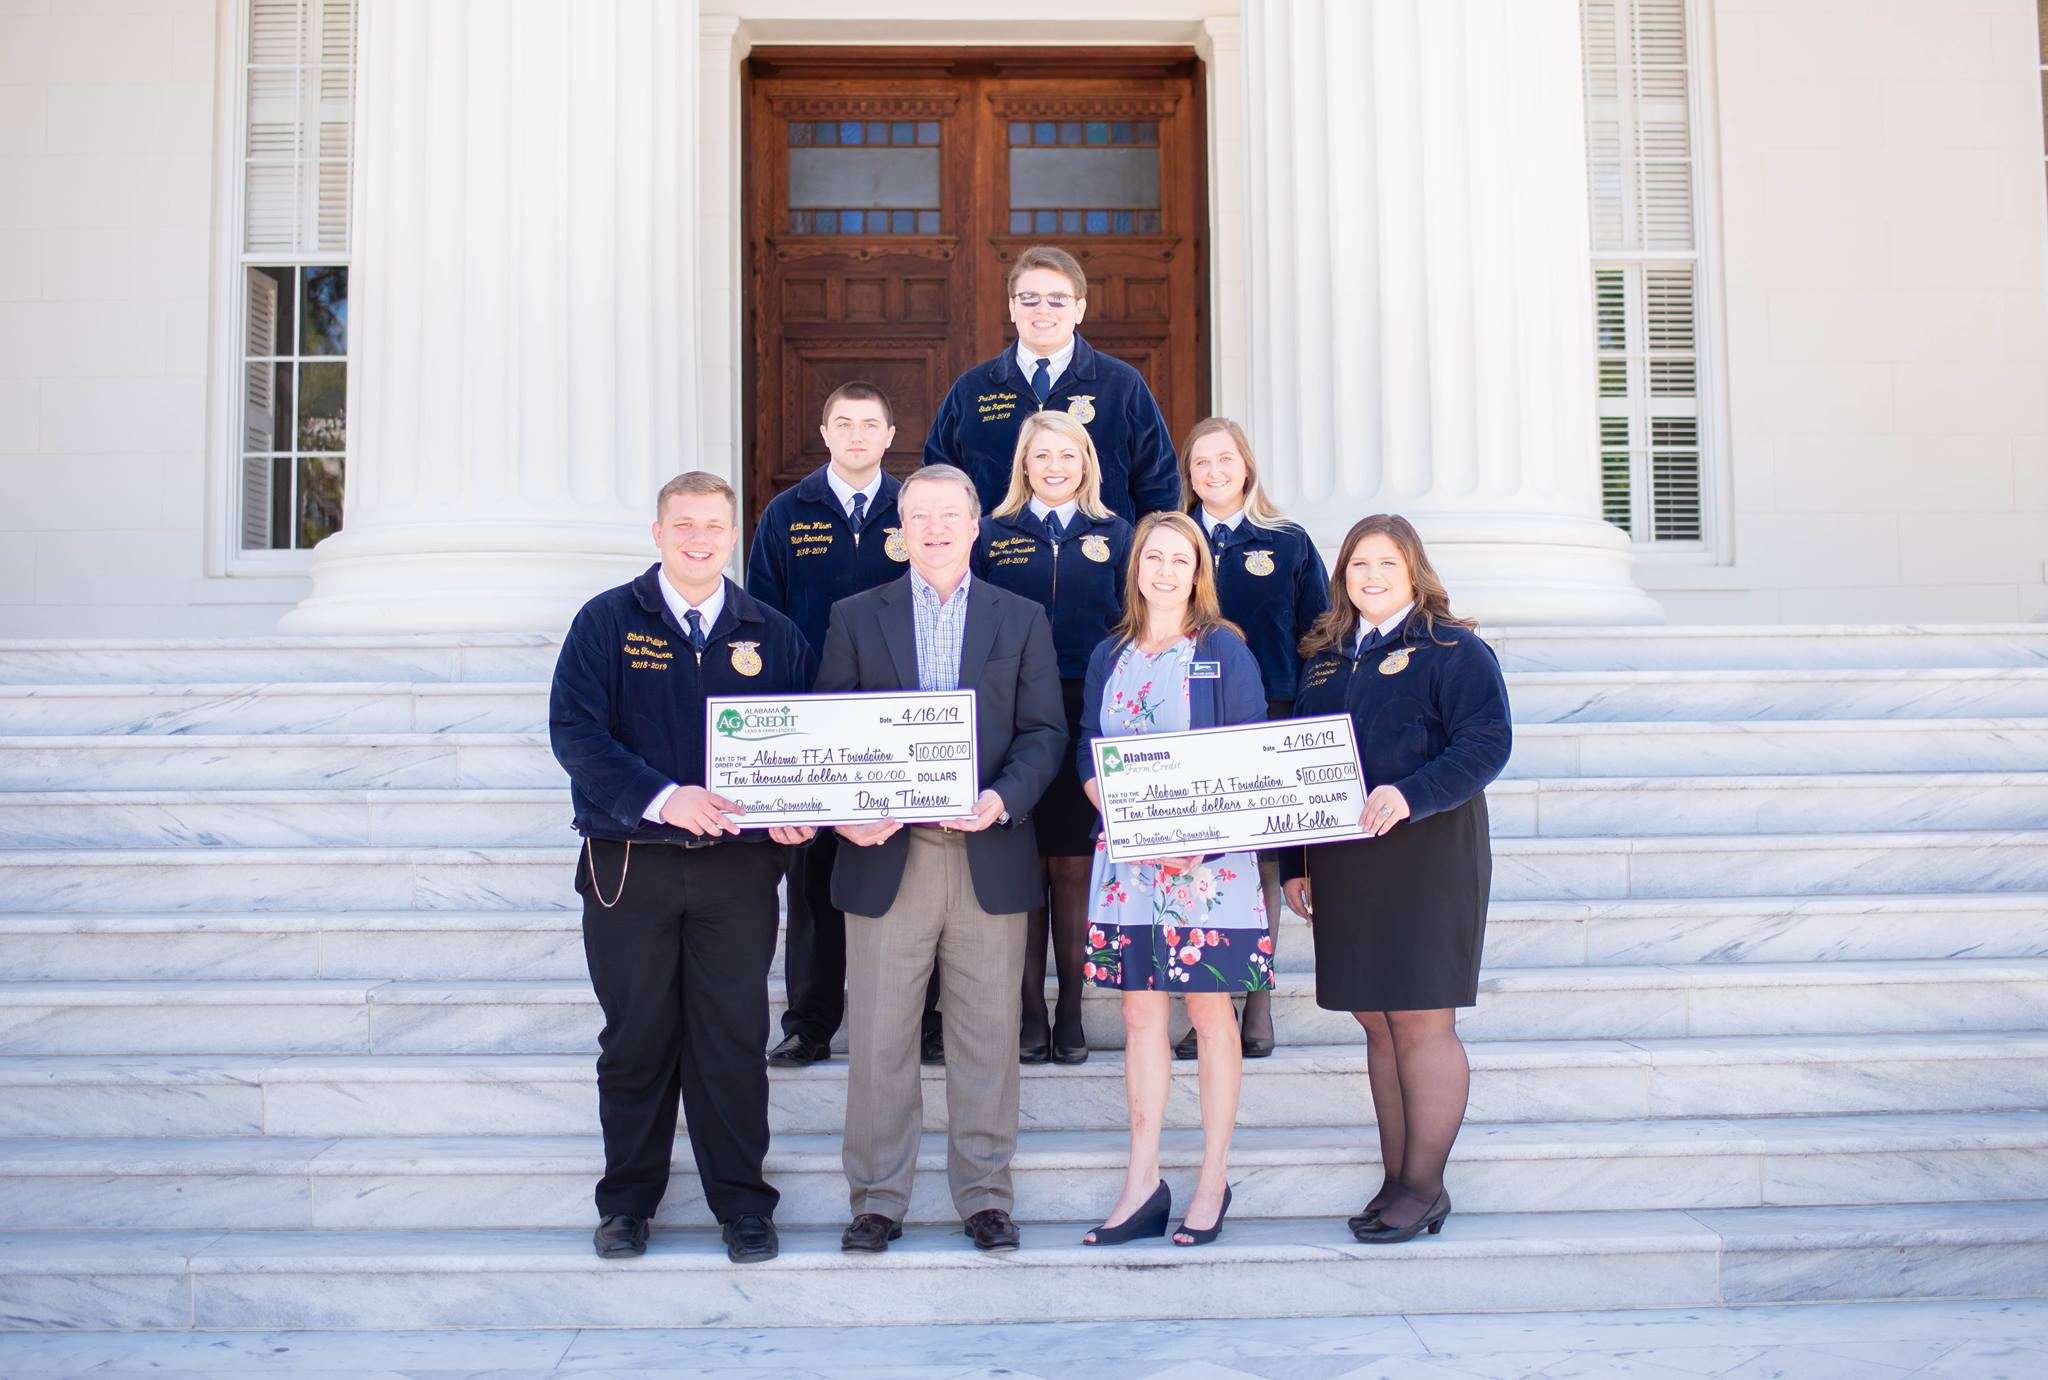 Pictured: Alabama Ag Credit's Doug Thiessen and Alabama Farm Credit's Brandi Jones with Alabama FFA State officers accepting the title sponsor donation